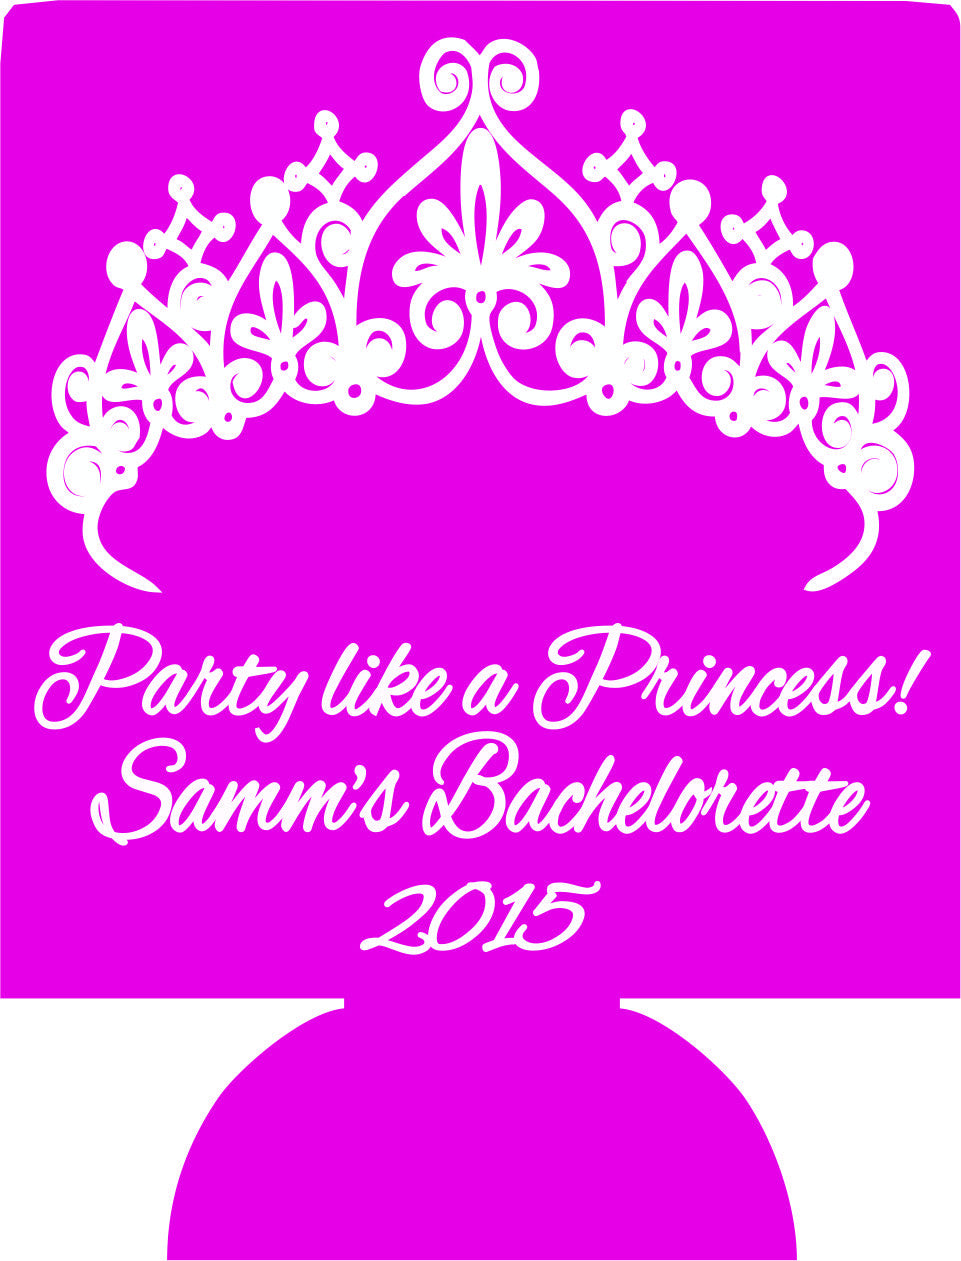 Party like a Princess Bachelorette Koozies low minimums crown party